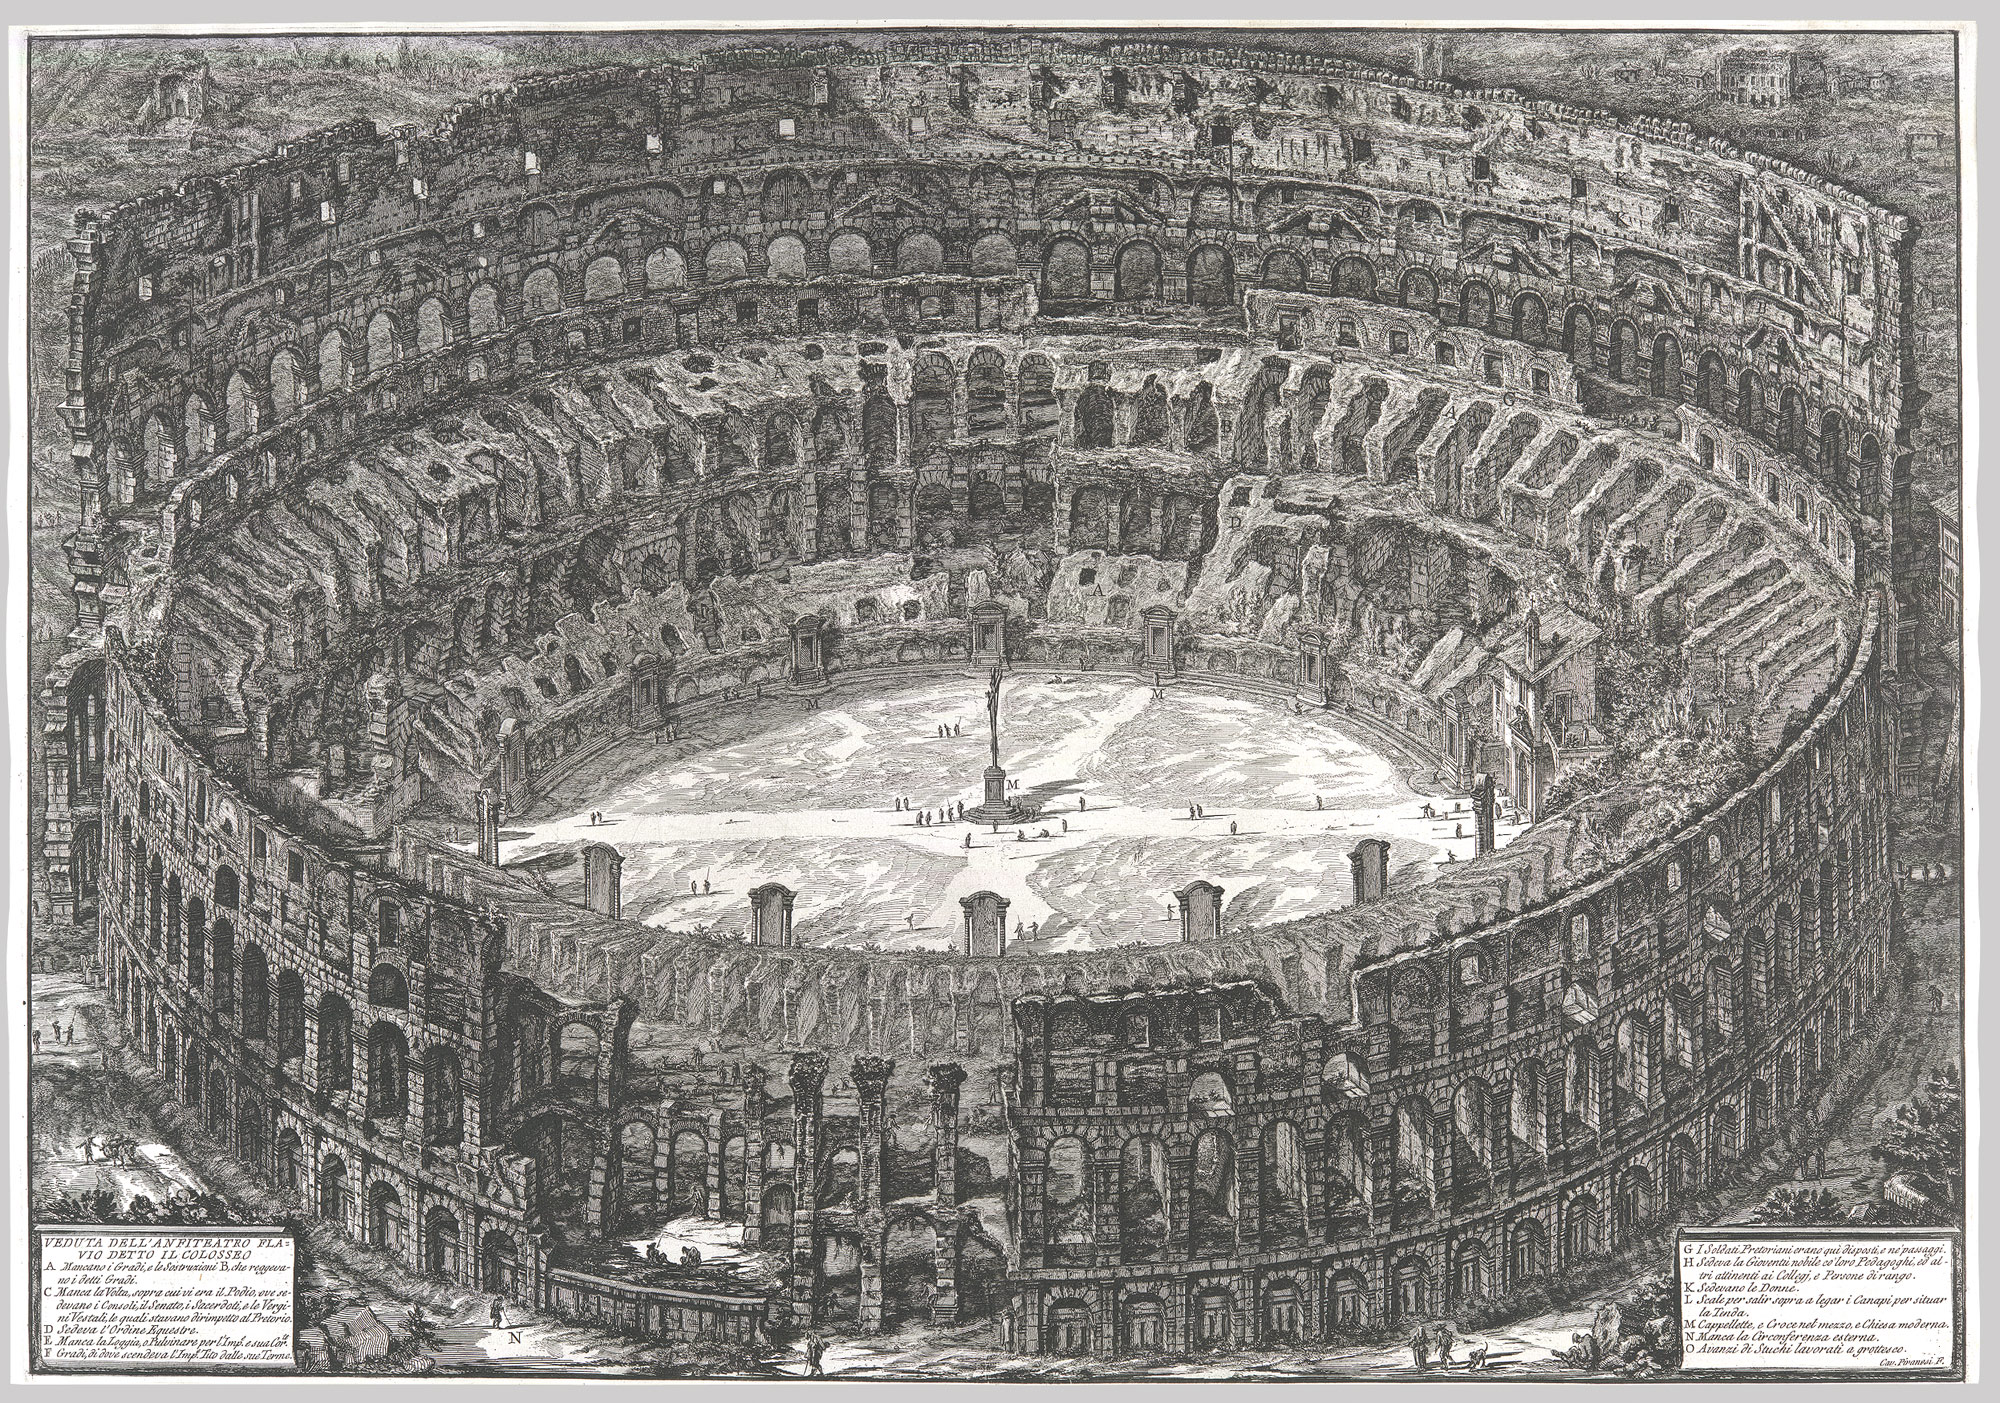 Veduta dellAnfiteatro Flavio detto il Colosseo, from: Vedute di Roma (Views of Rome)